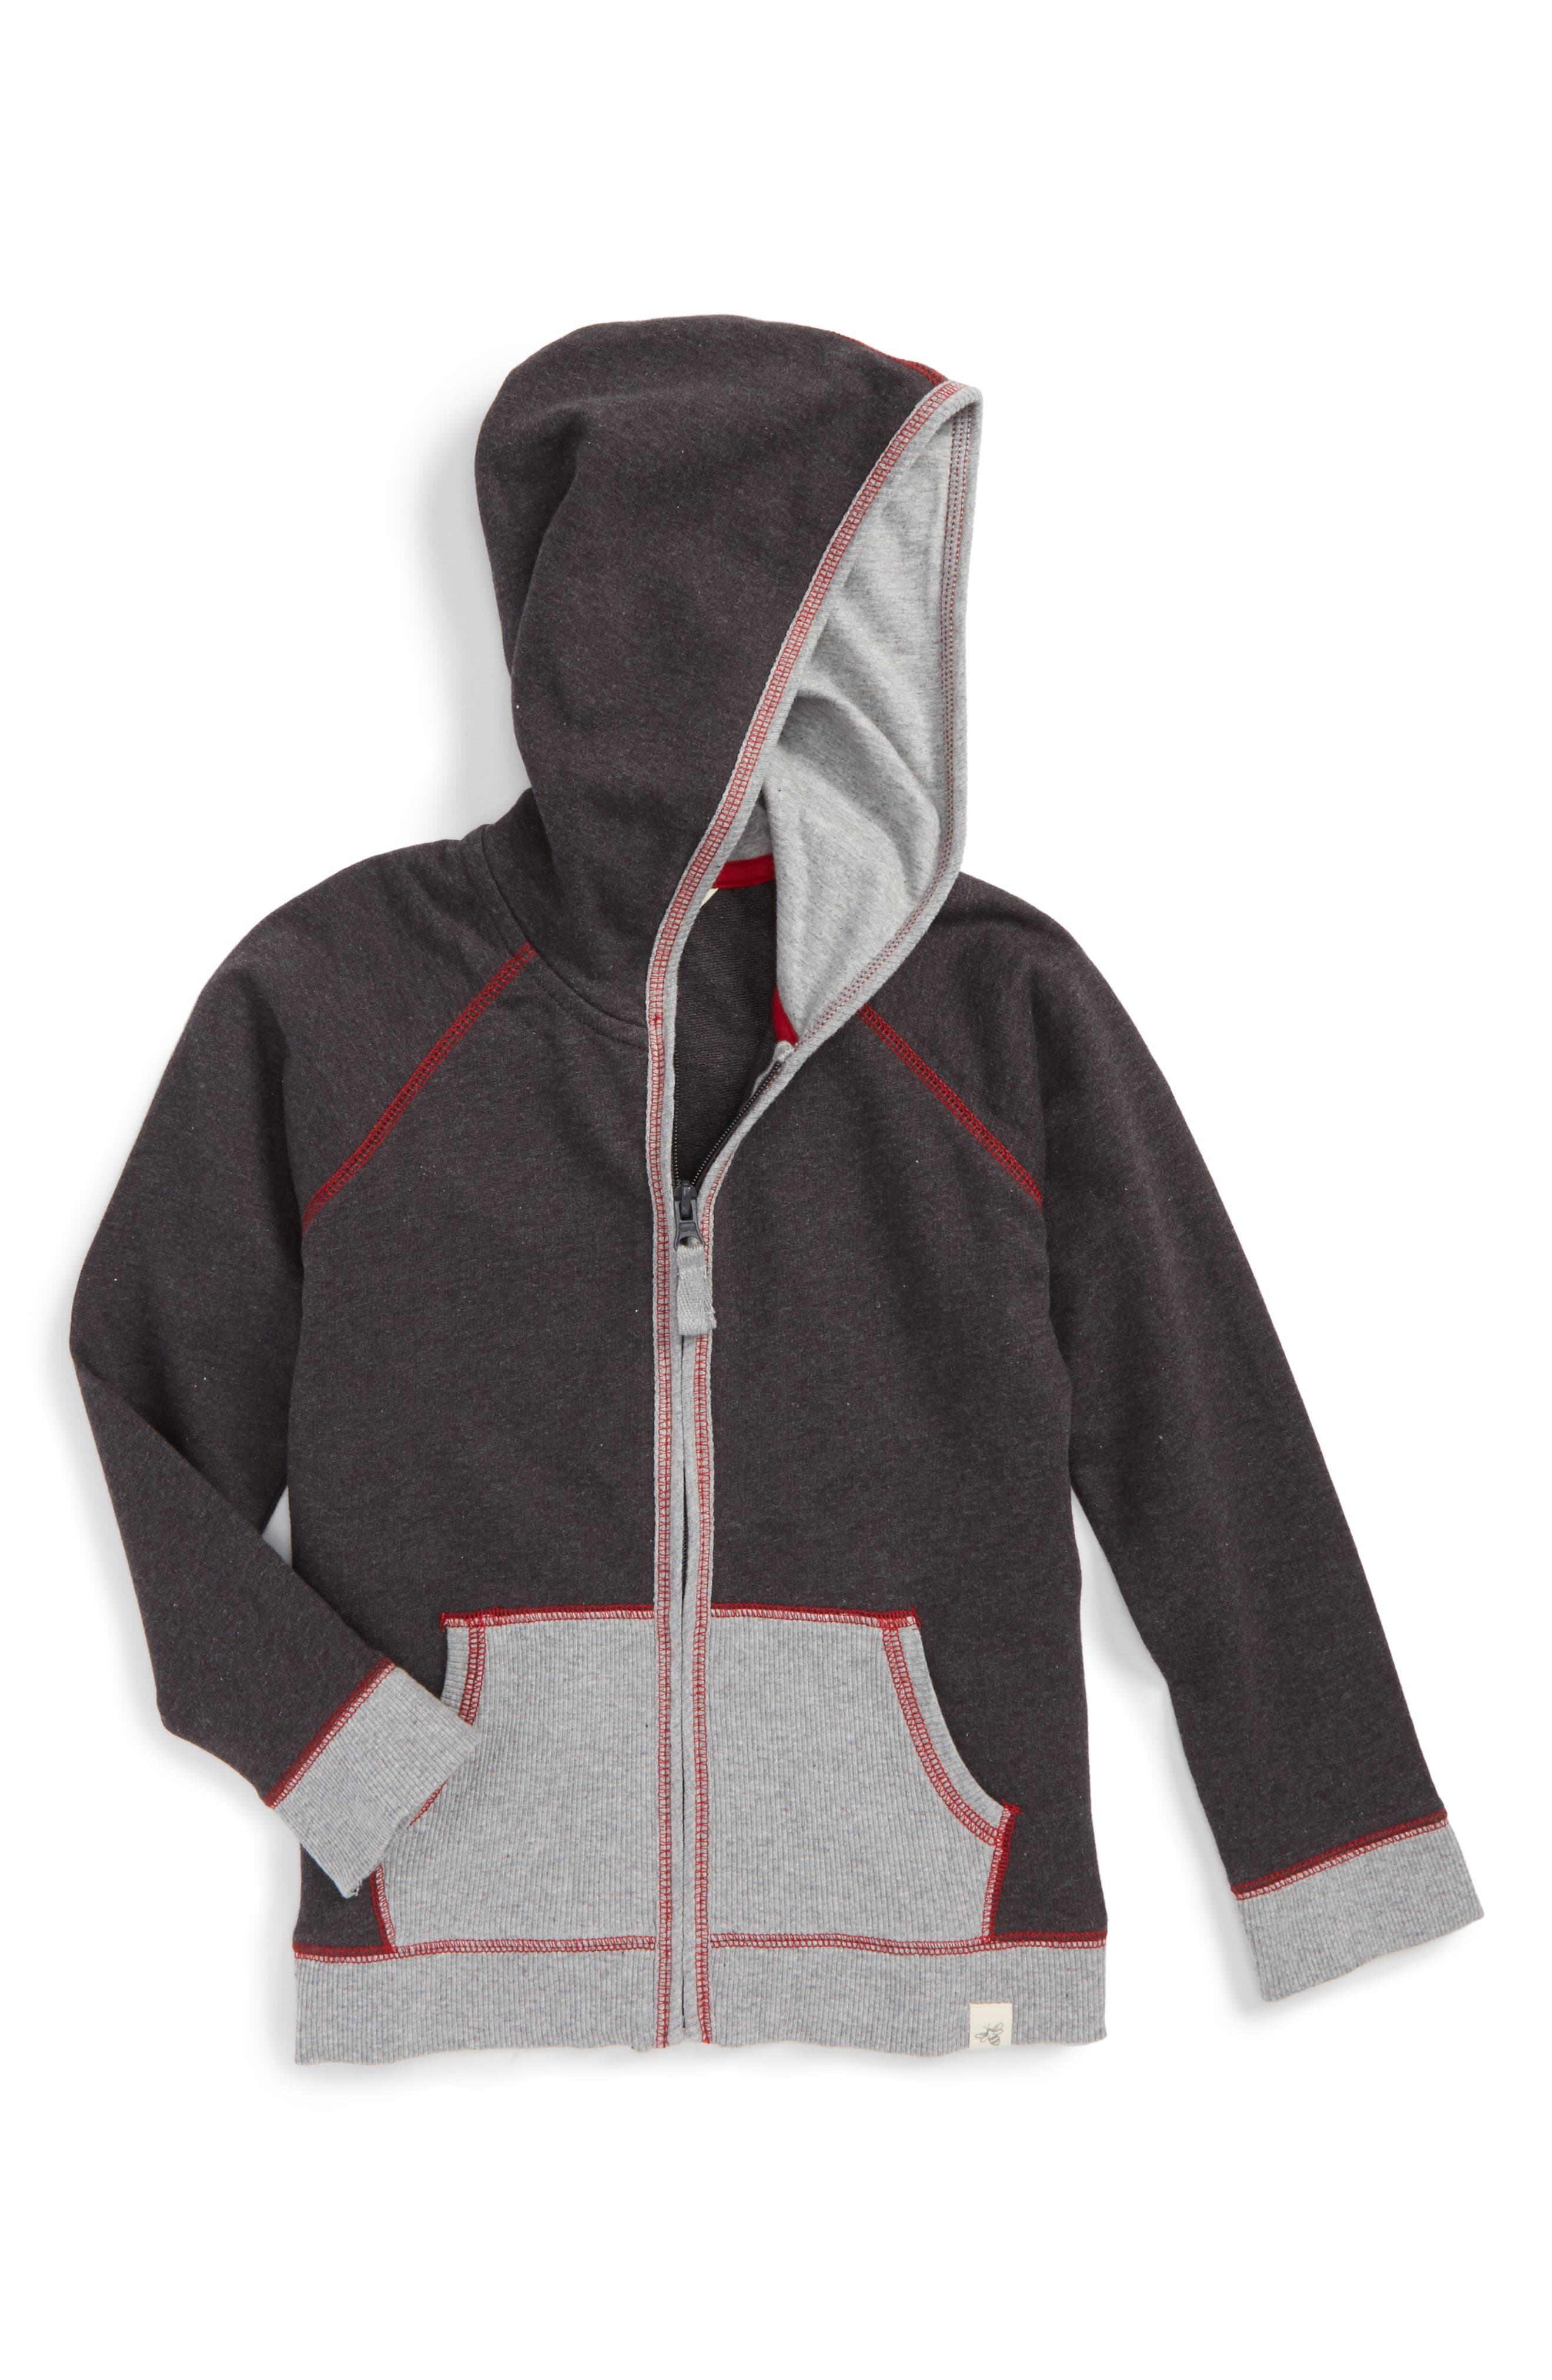 French Terry Organic Cotton Hoodie,                             Main thumbnail 1, color,                             Coal Heather